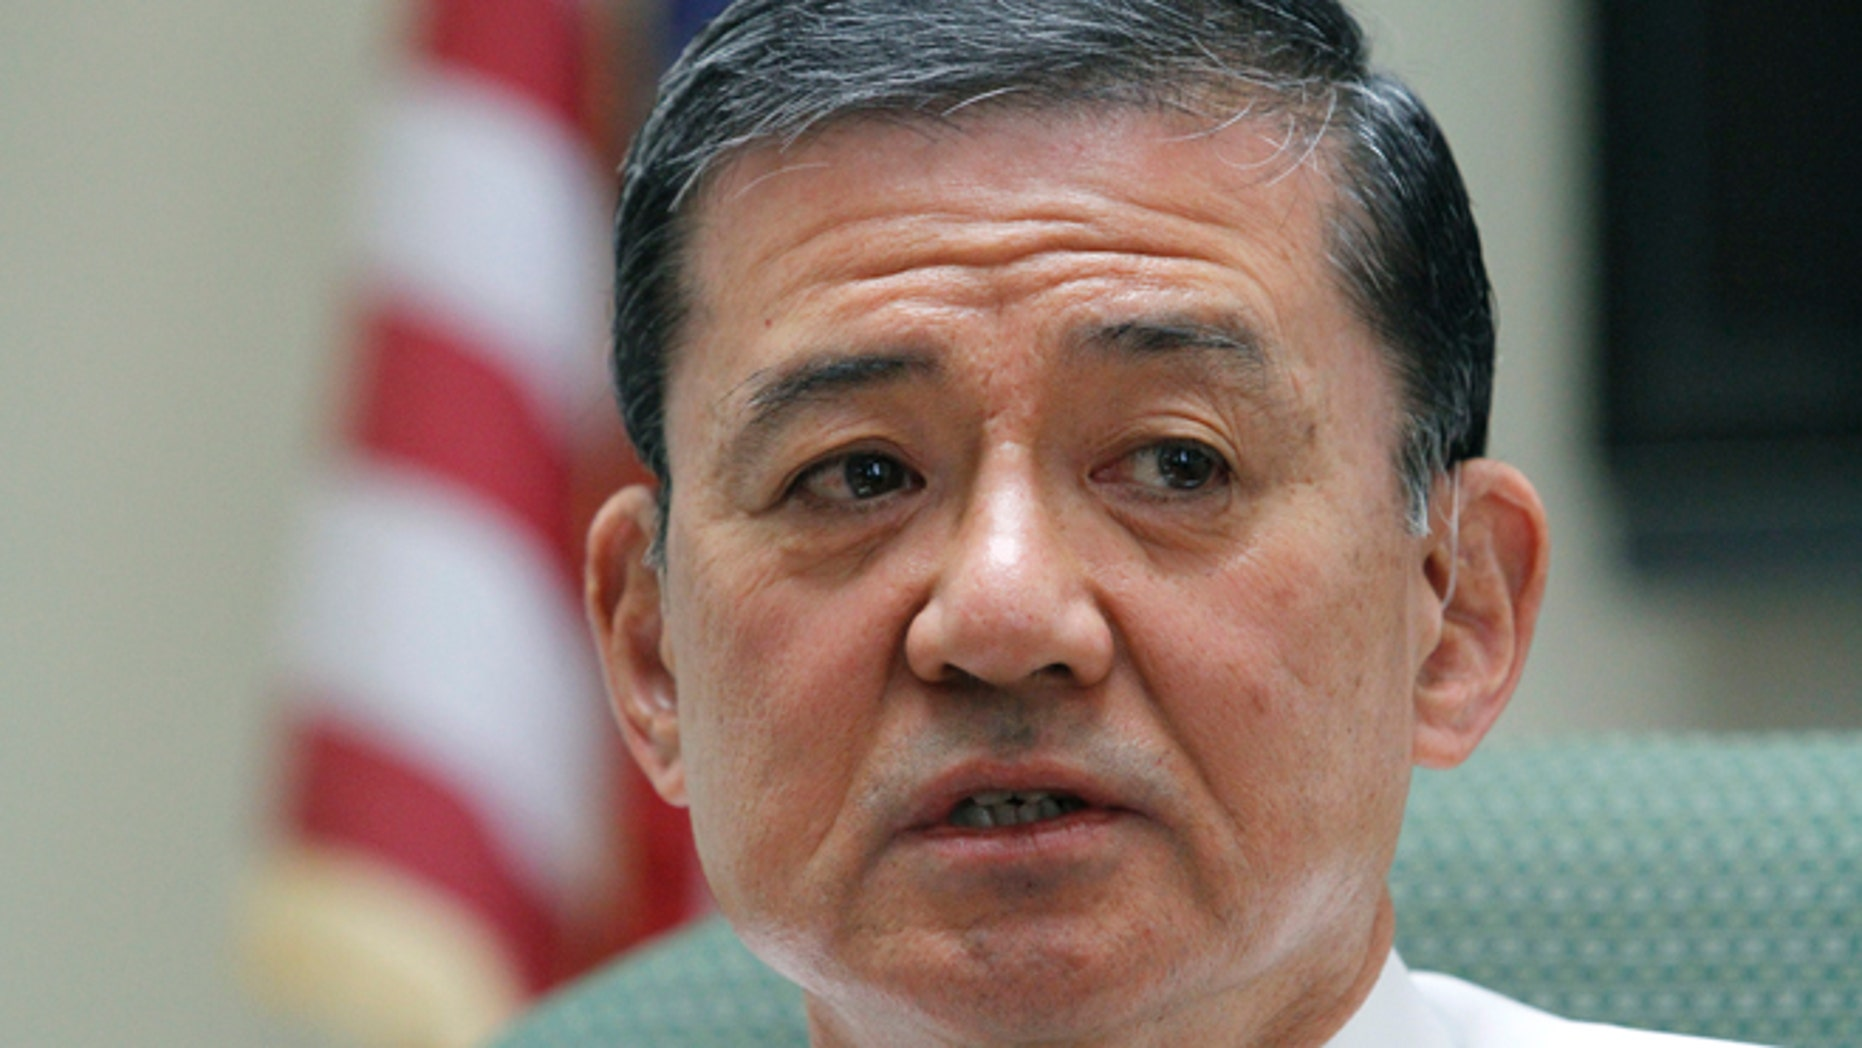 In this April 12, 2012 file photo, Veterans Affairs Secretary Eric Shinseki makes remarks during a visit to a medical center in Coatesville, Pa.